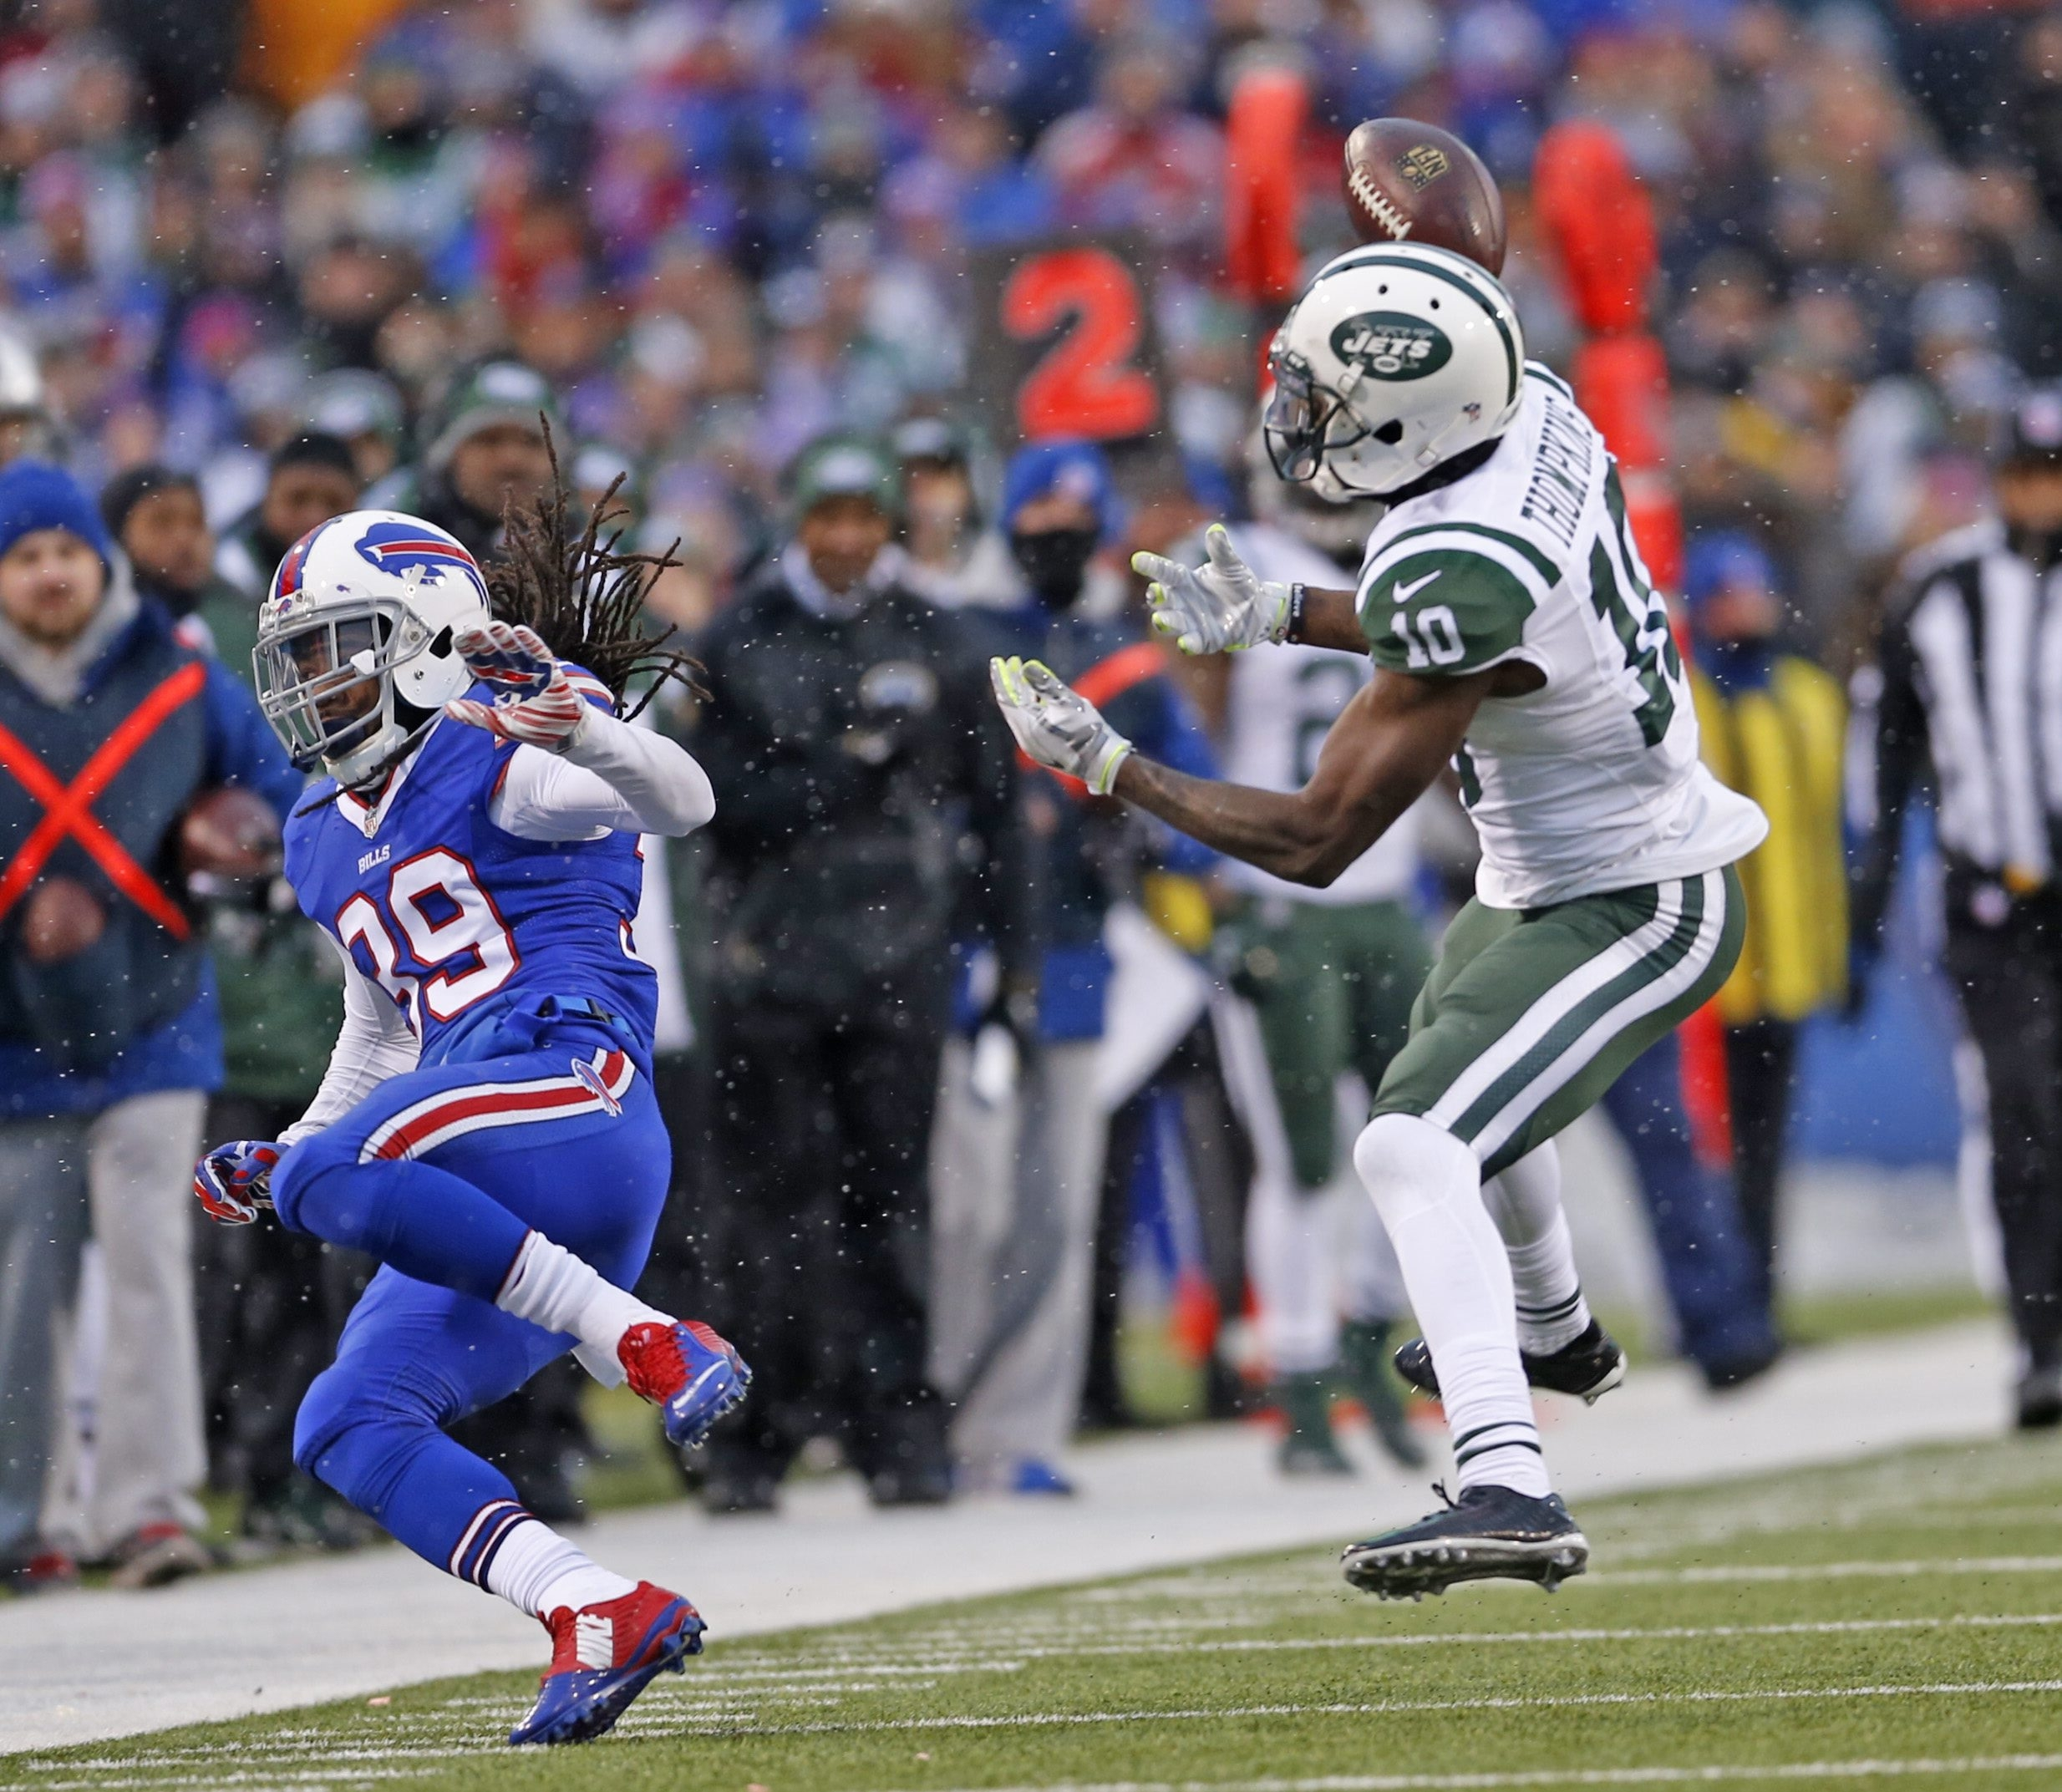 Jets receiver Kenbrell Thomkpkins gets the ball knocked out of his hands by Bills defensive back Mario Butler in a game-saving play with 17 seconds left to go.